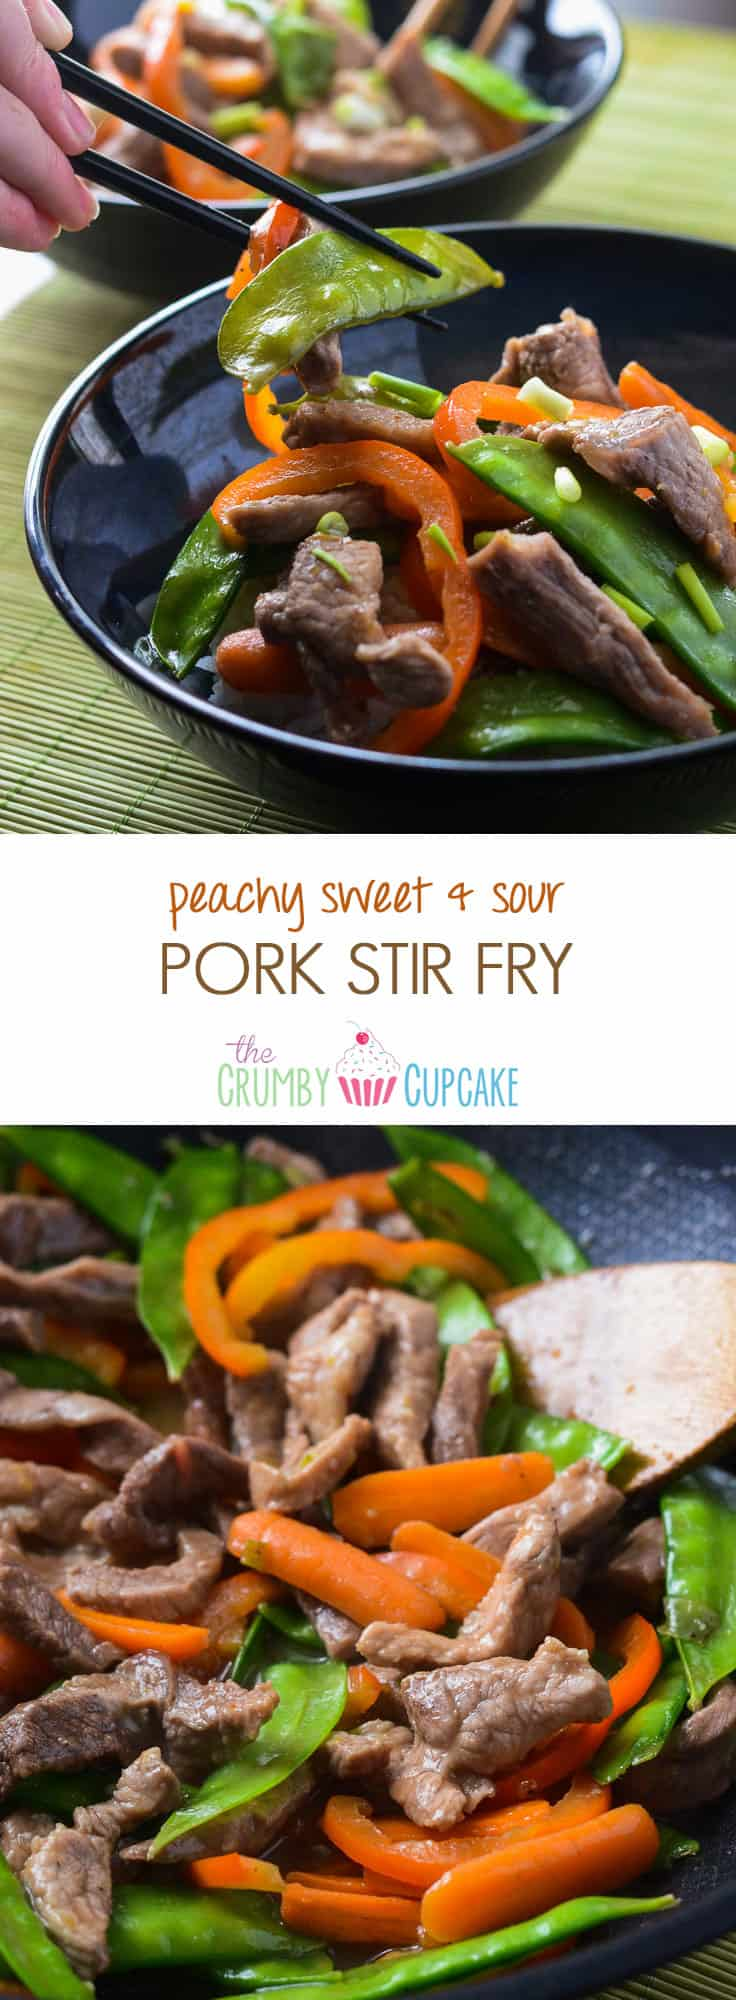 Peachy Sweet & Sour Pork Stir Fry | A delicious stir fry dinner you can have on the table in 30 minutes, doused in a tangy peach sweet & sour sauce!